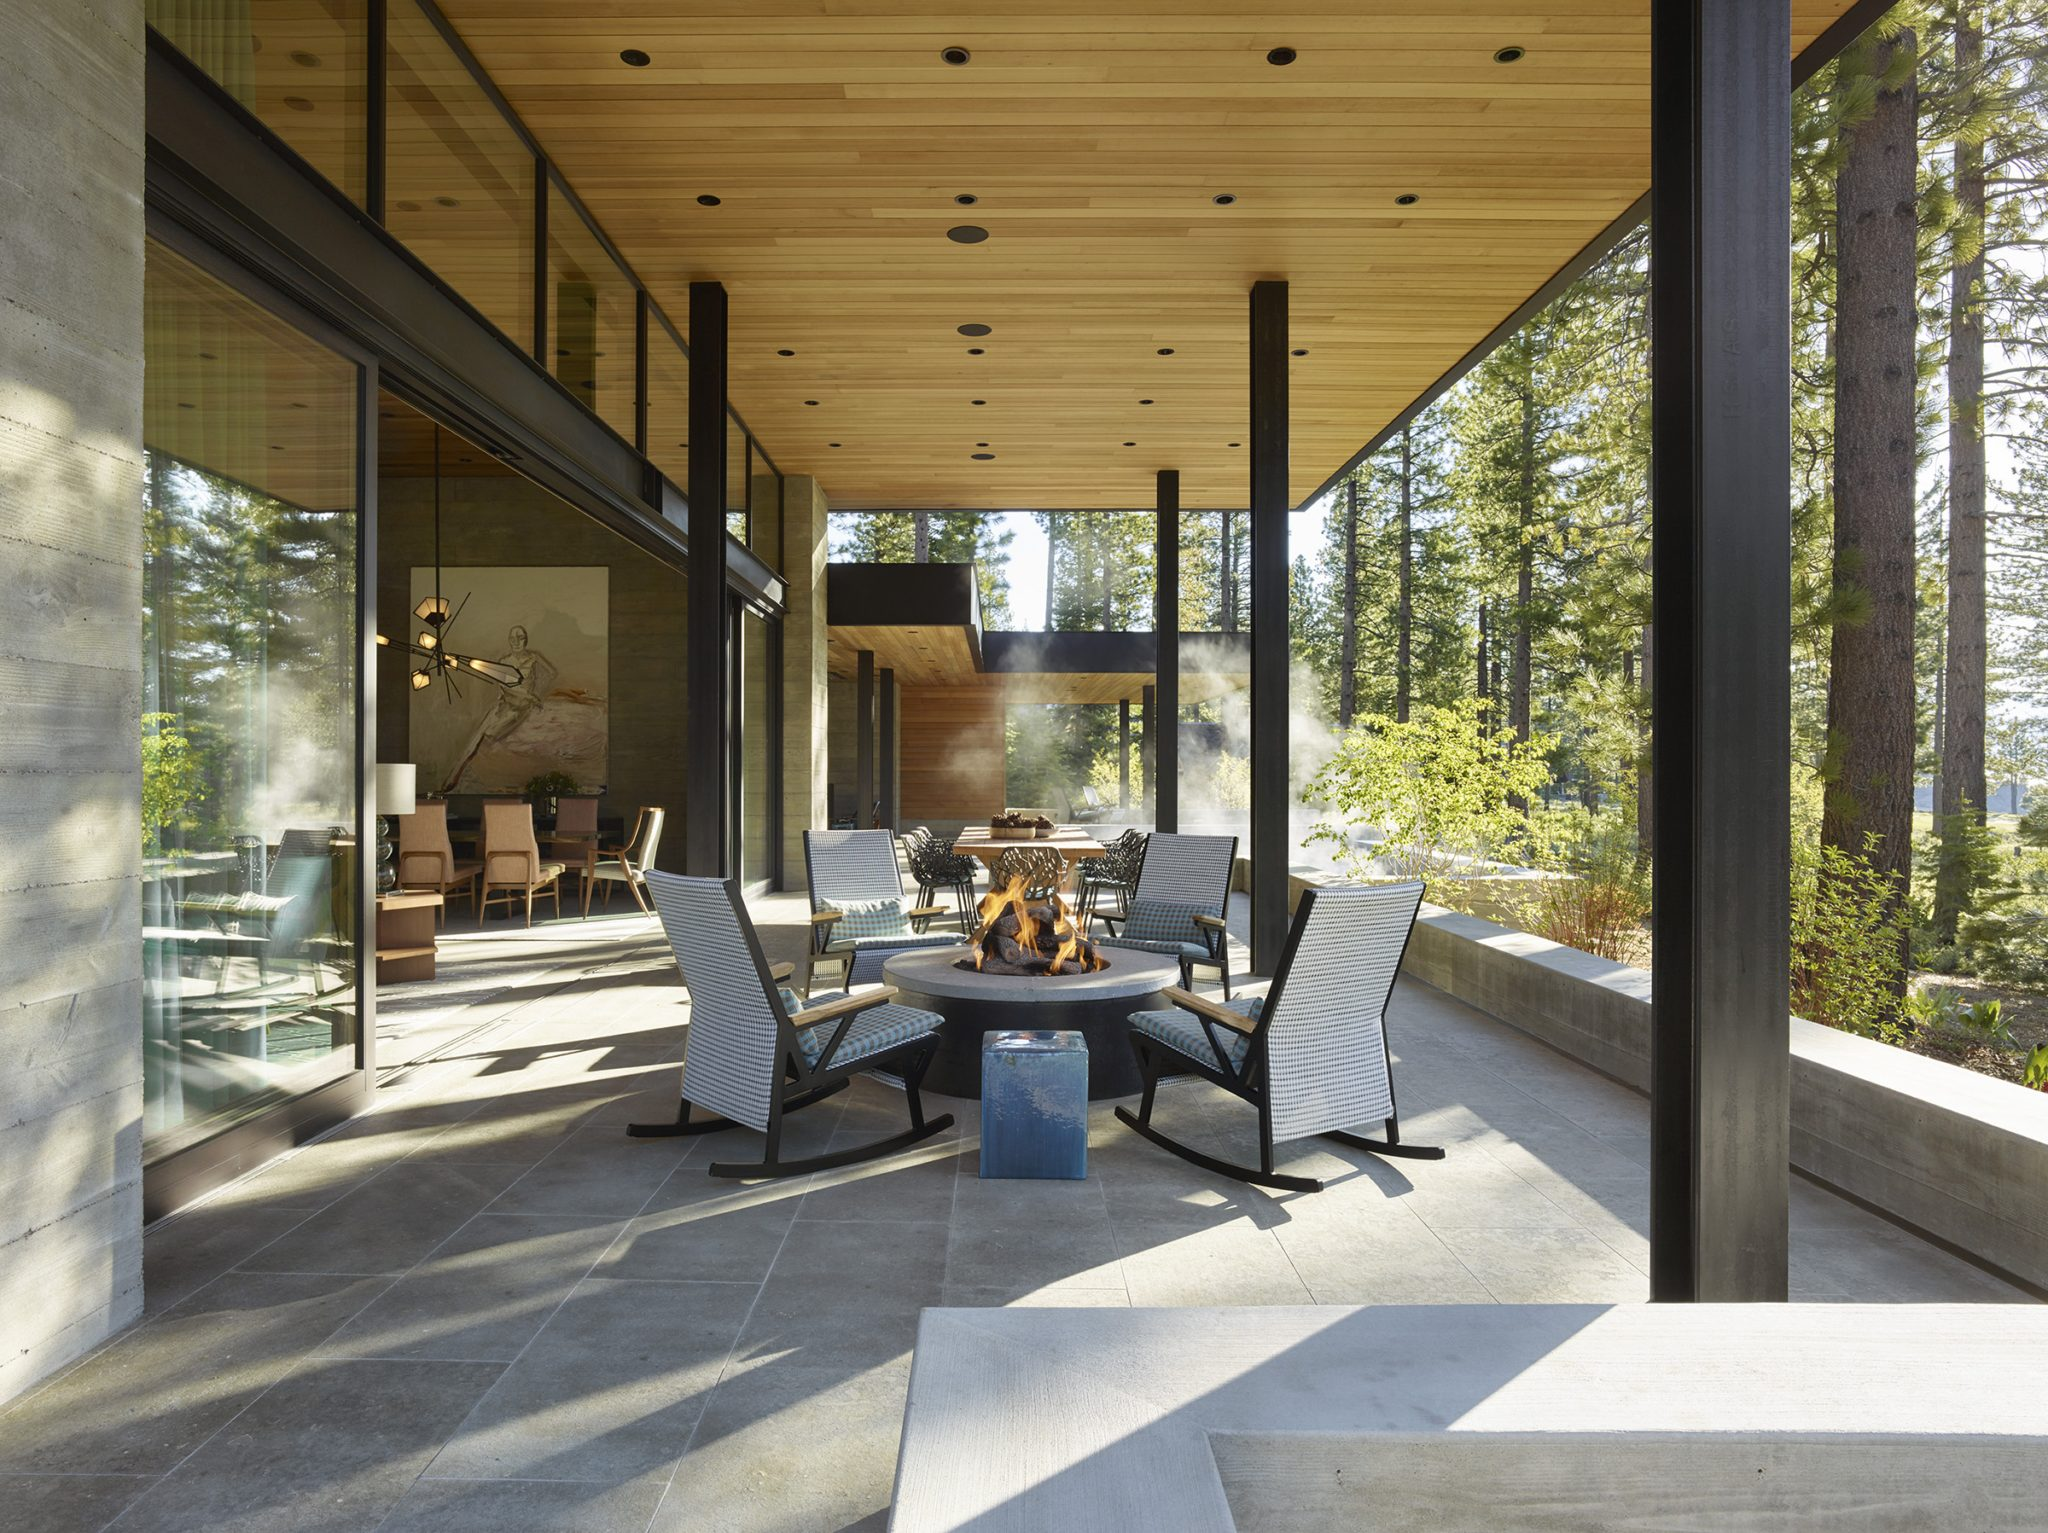 Rocking chairs by Kettal surround the firepit; the dining table in the background is by Teak Warehouse, and the dining chairs are by Janus et Cie.